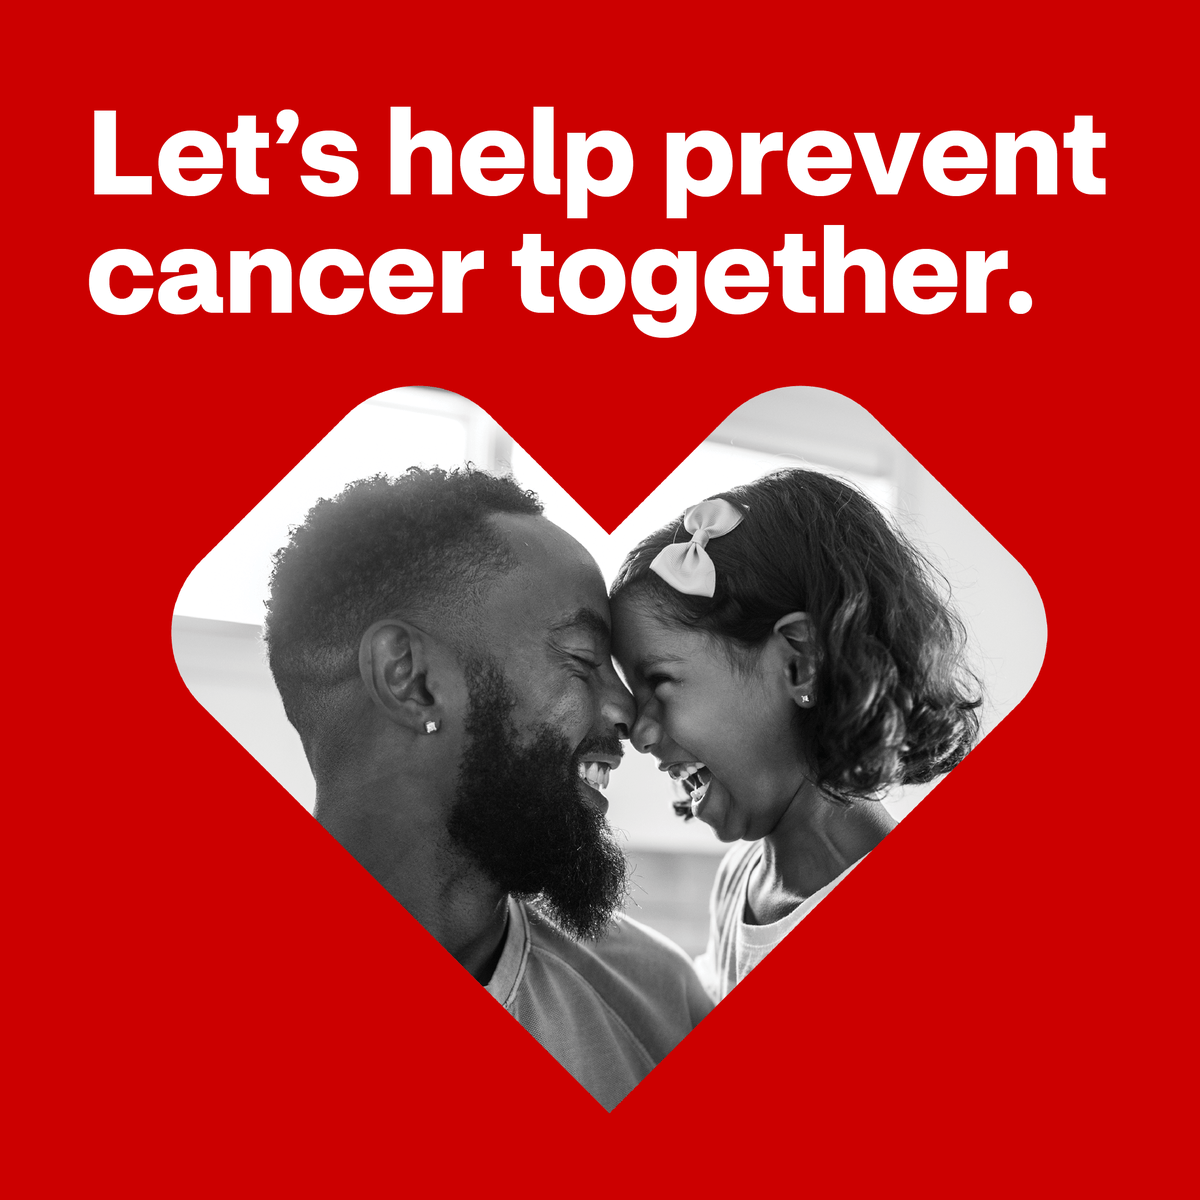 Support your #AmericanCancerSociety by rounding up your change @CVSPharmacy now through 9/26!  https://t.co/yyTvYLYg5O https://t.co/iyNPT88jnO